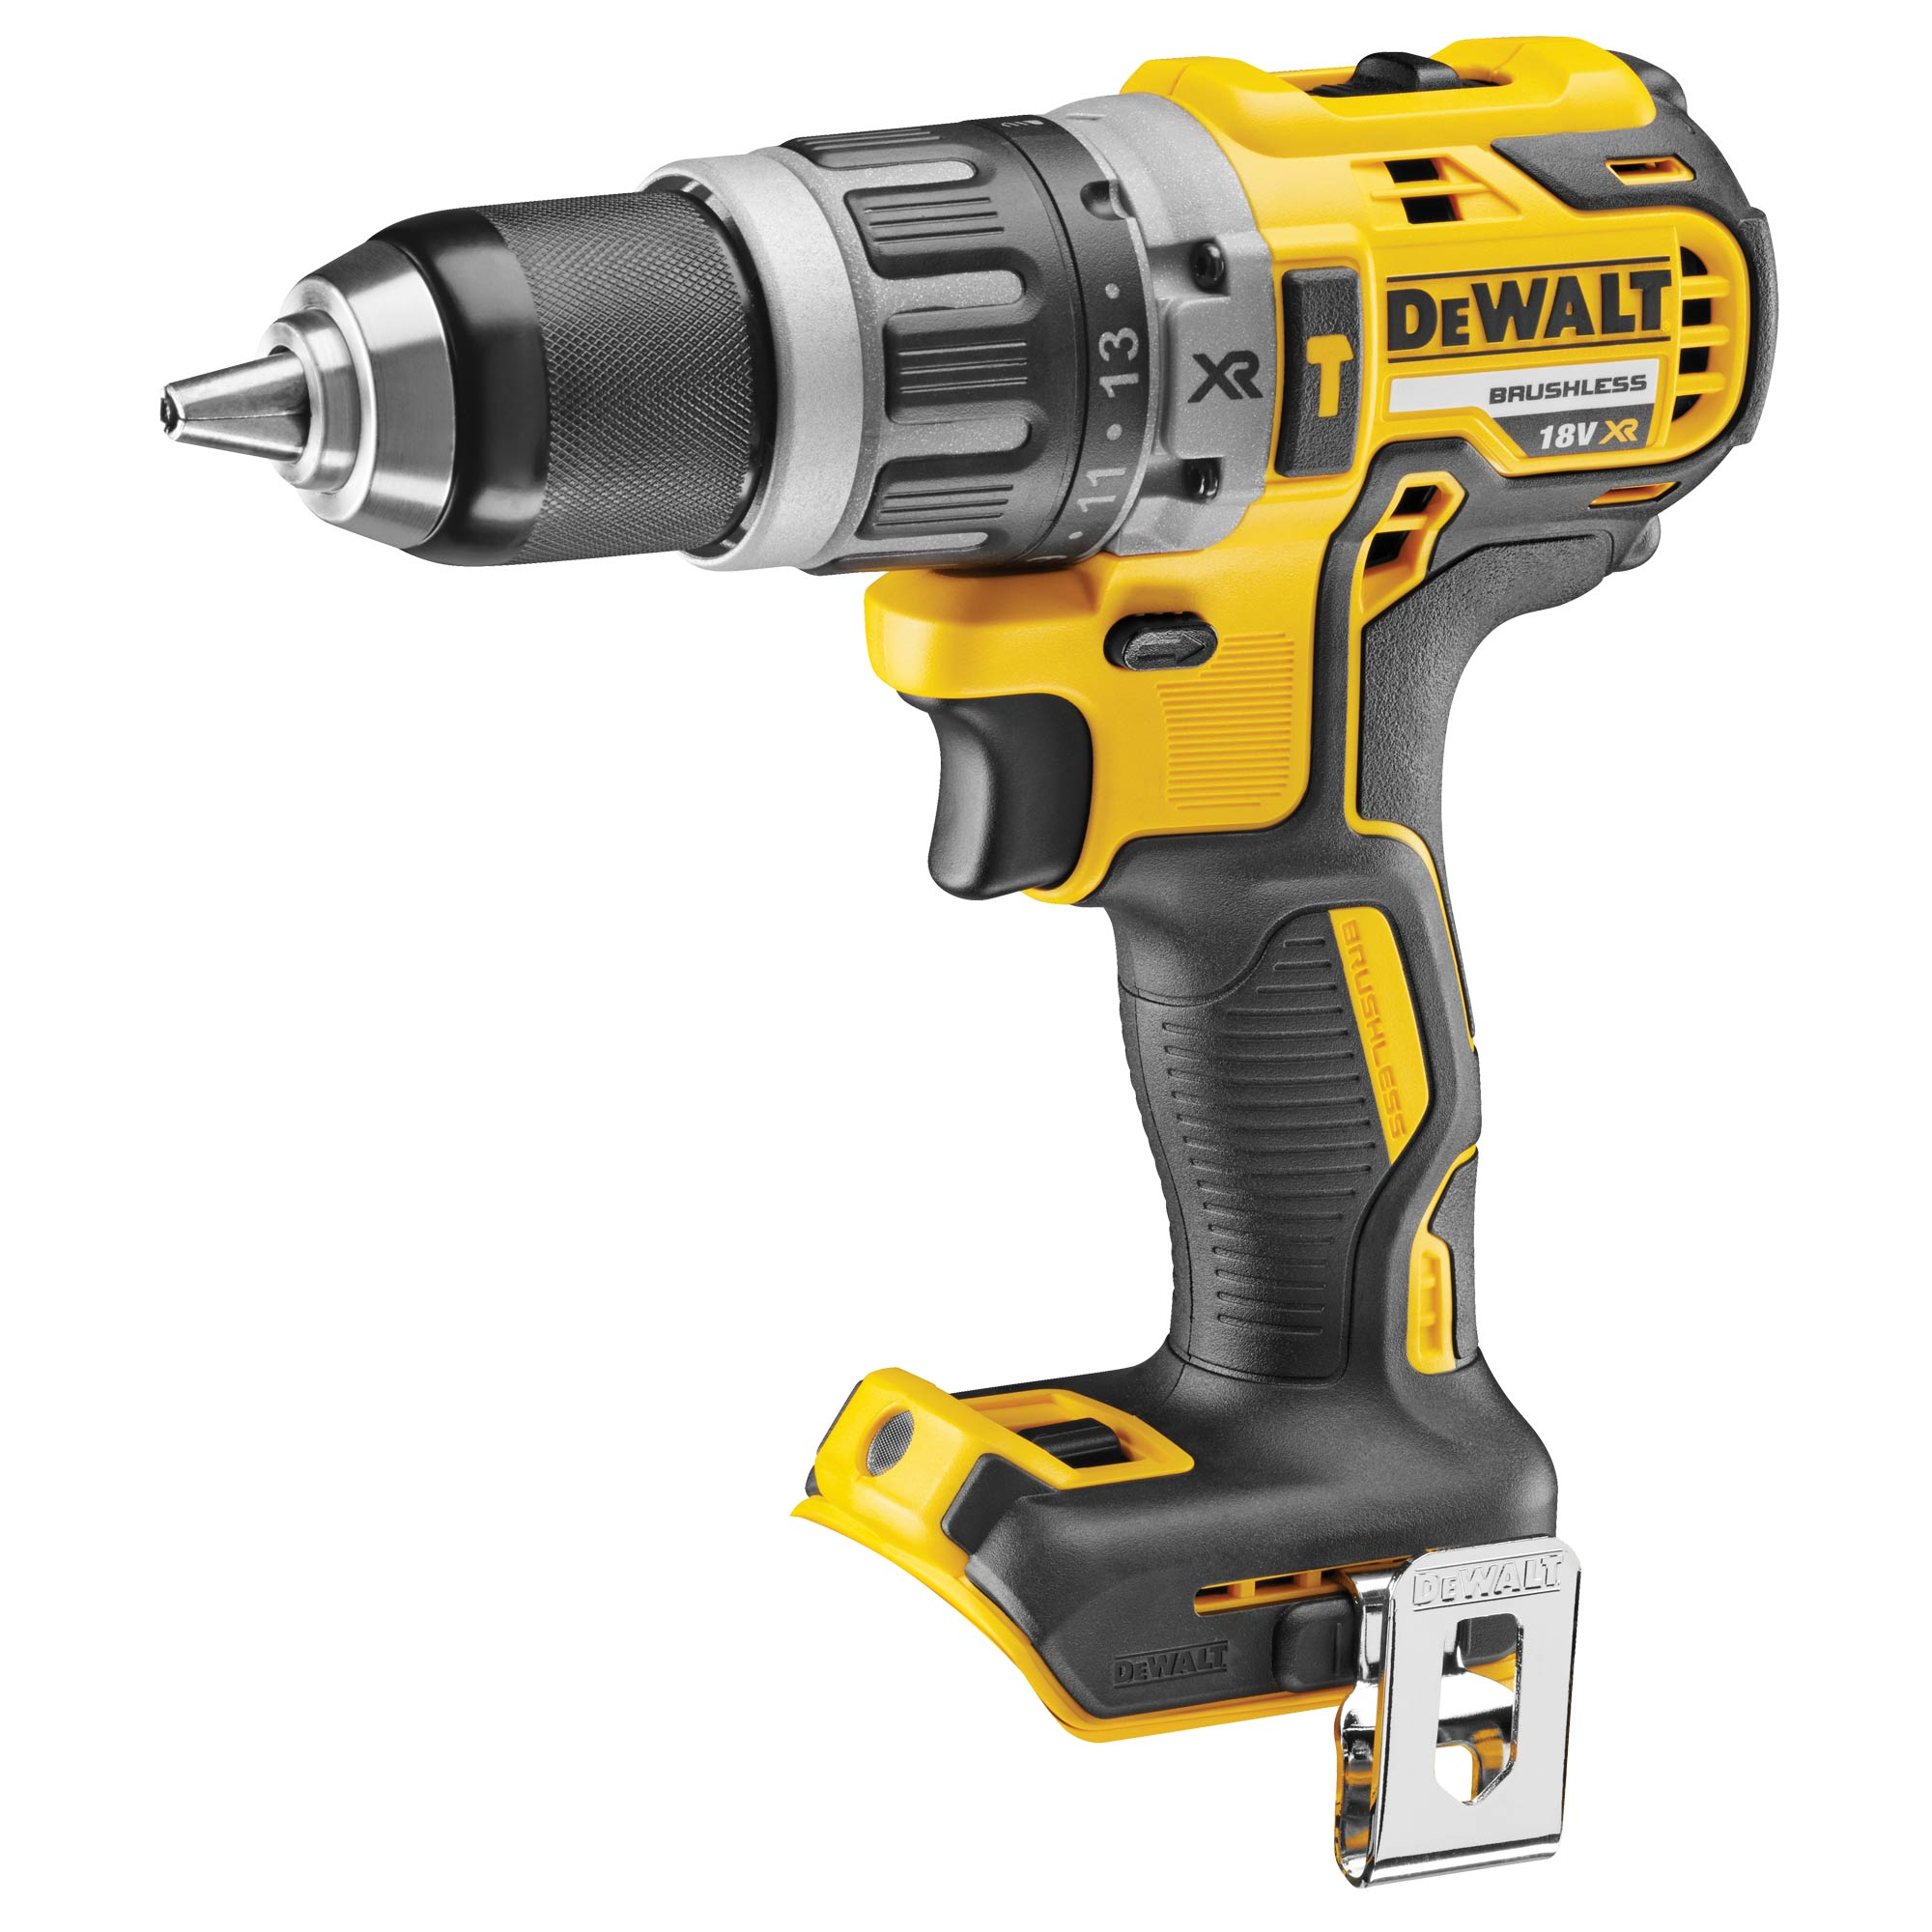 dewalt dcd796 dewalt 18v brushless 2nd generation hammer. Black Bedroom Furniture Sets. Home Design Ideas